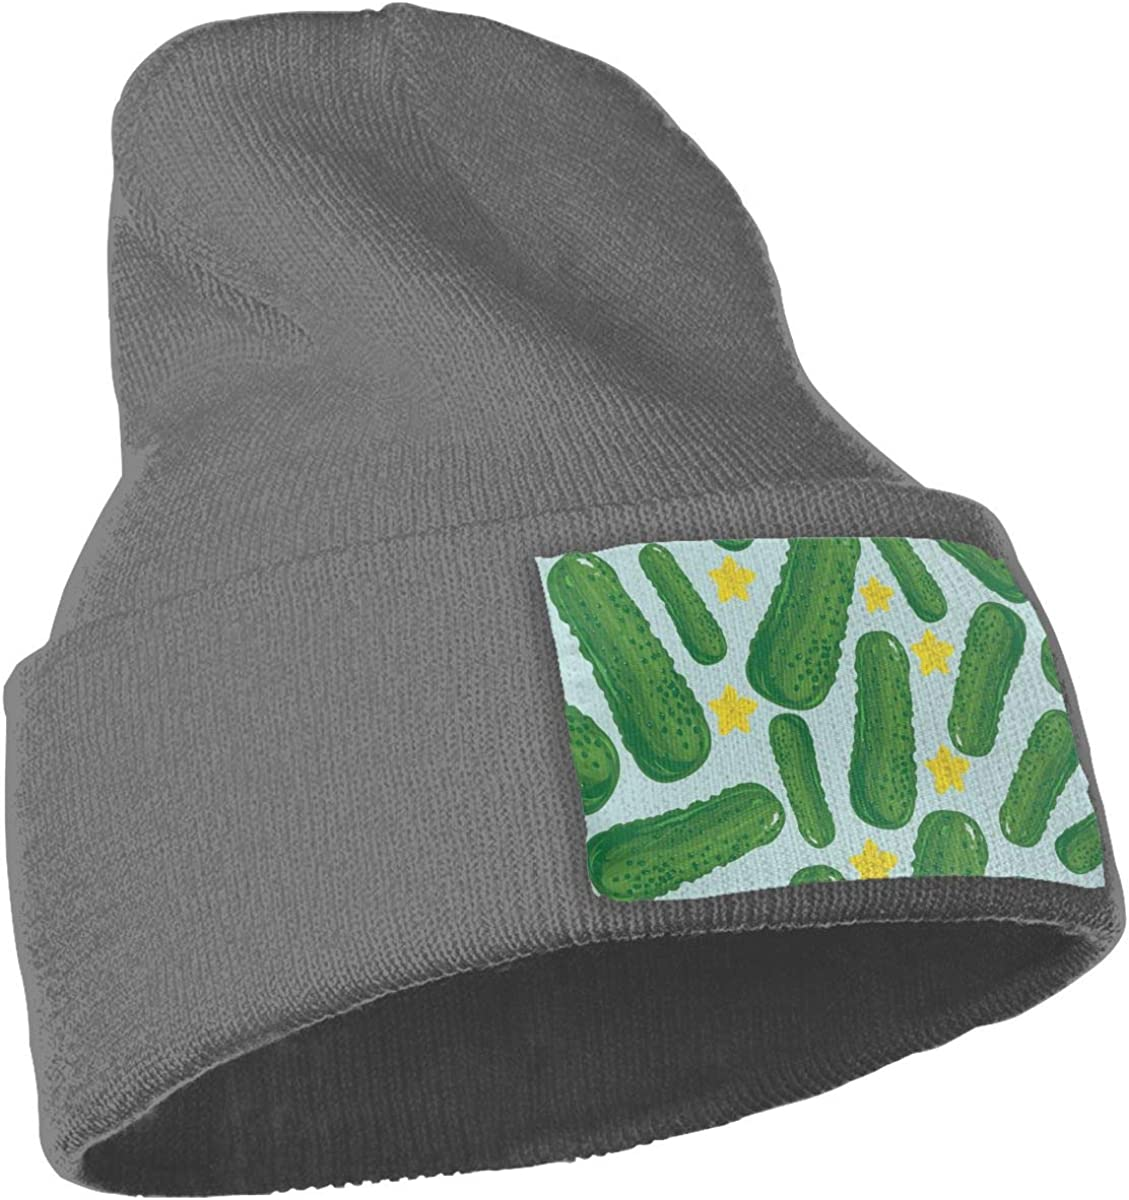 SARMY Pickles Winter Wool Cap Warm Beanies Knitted Hat